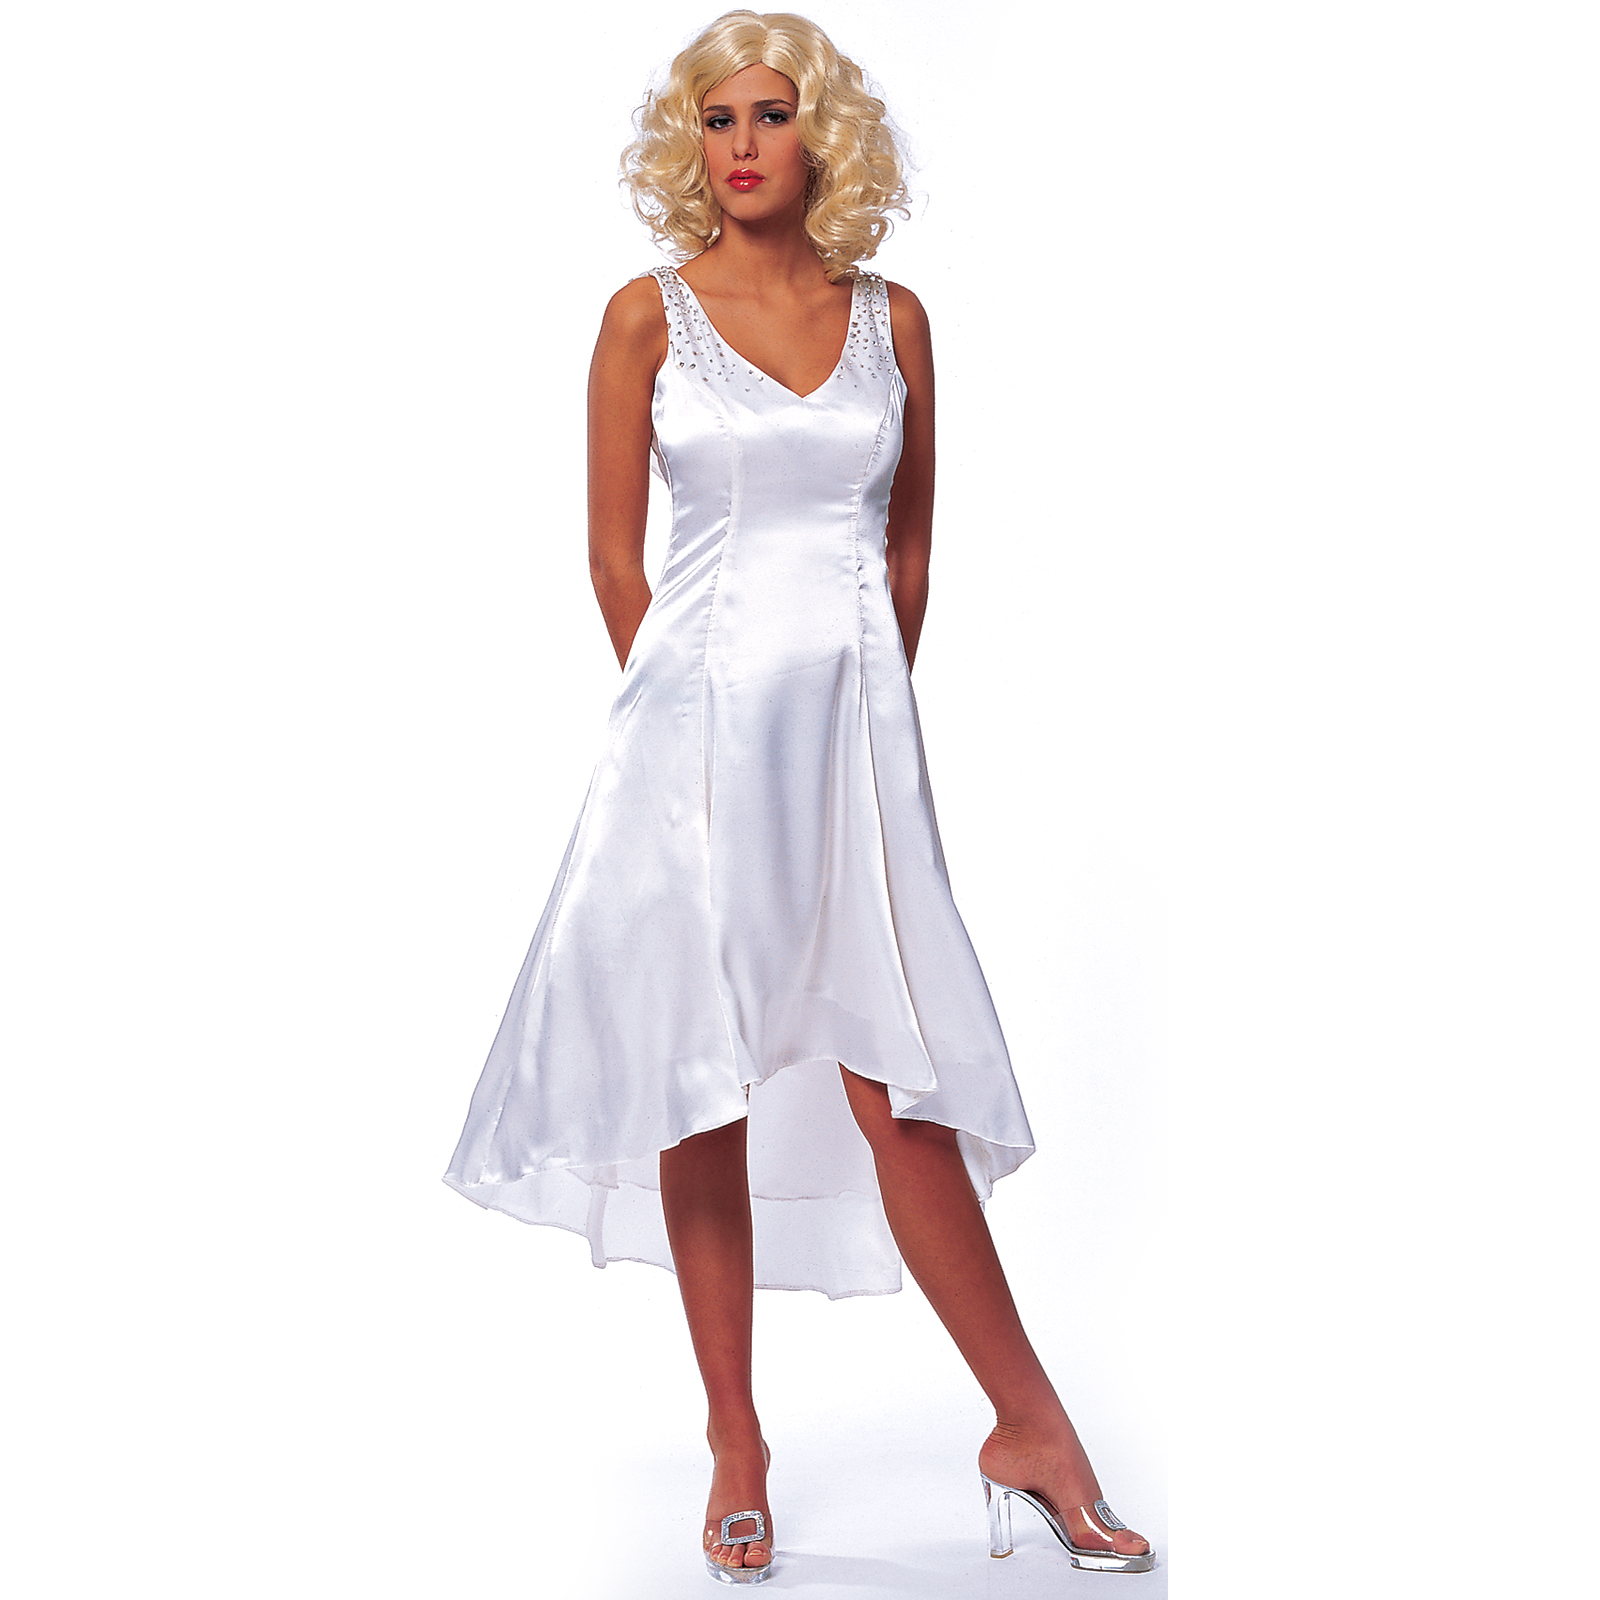 Ann darrow white dress